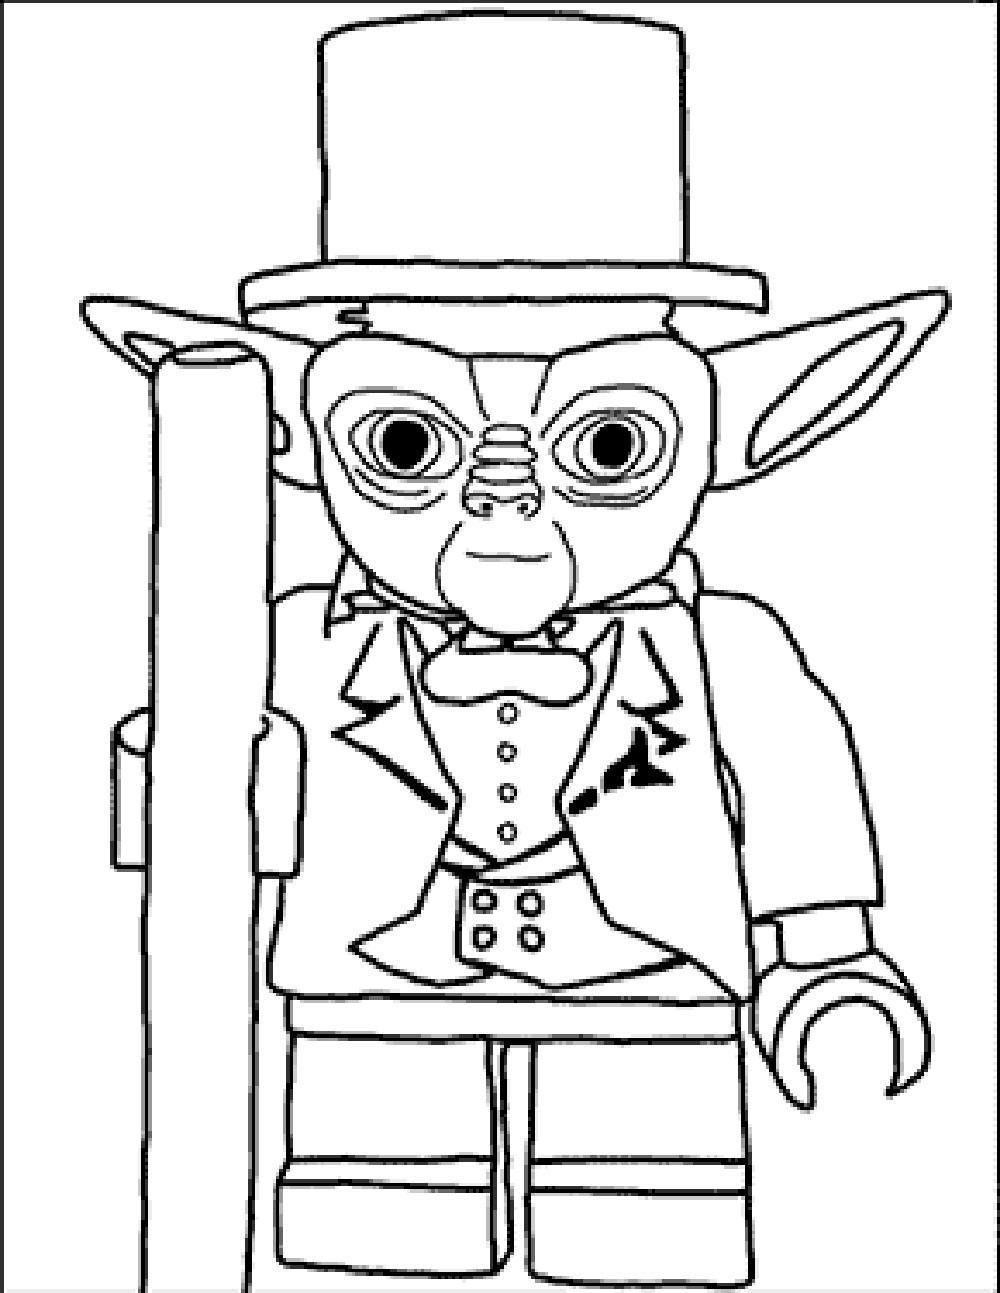 Clone Wars Coloring Pages Printable At Getdrawings Com Free For